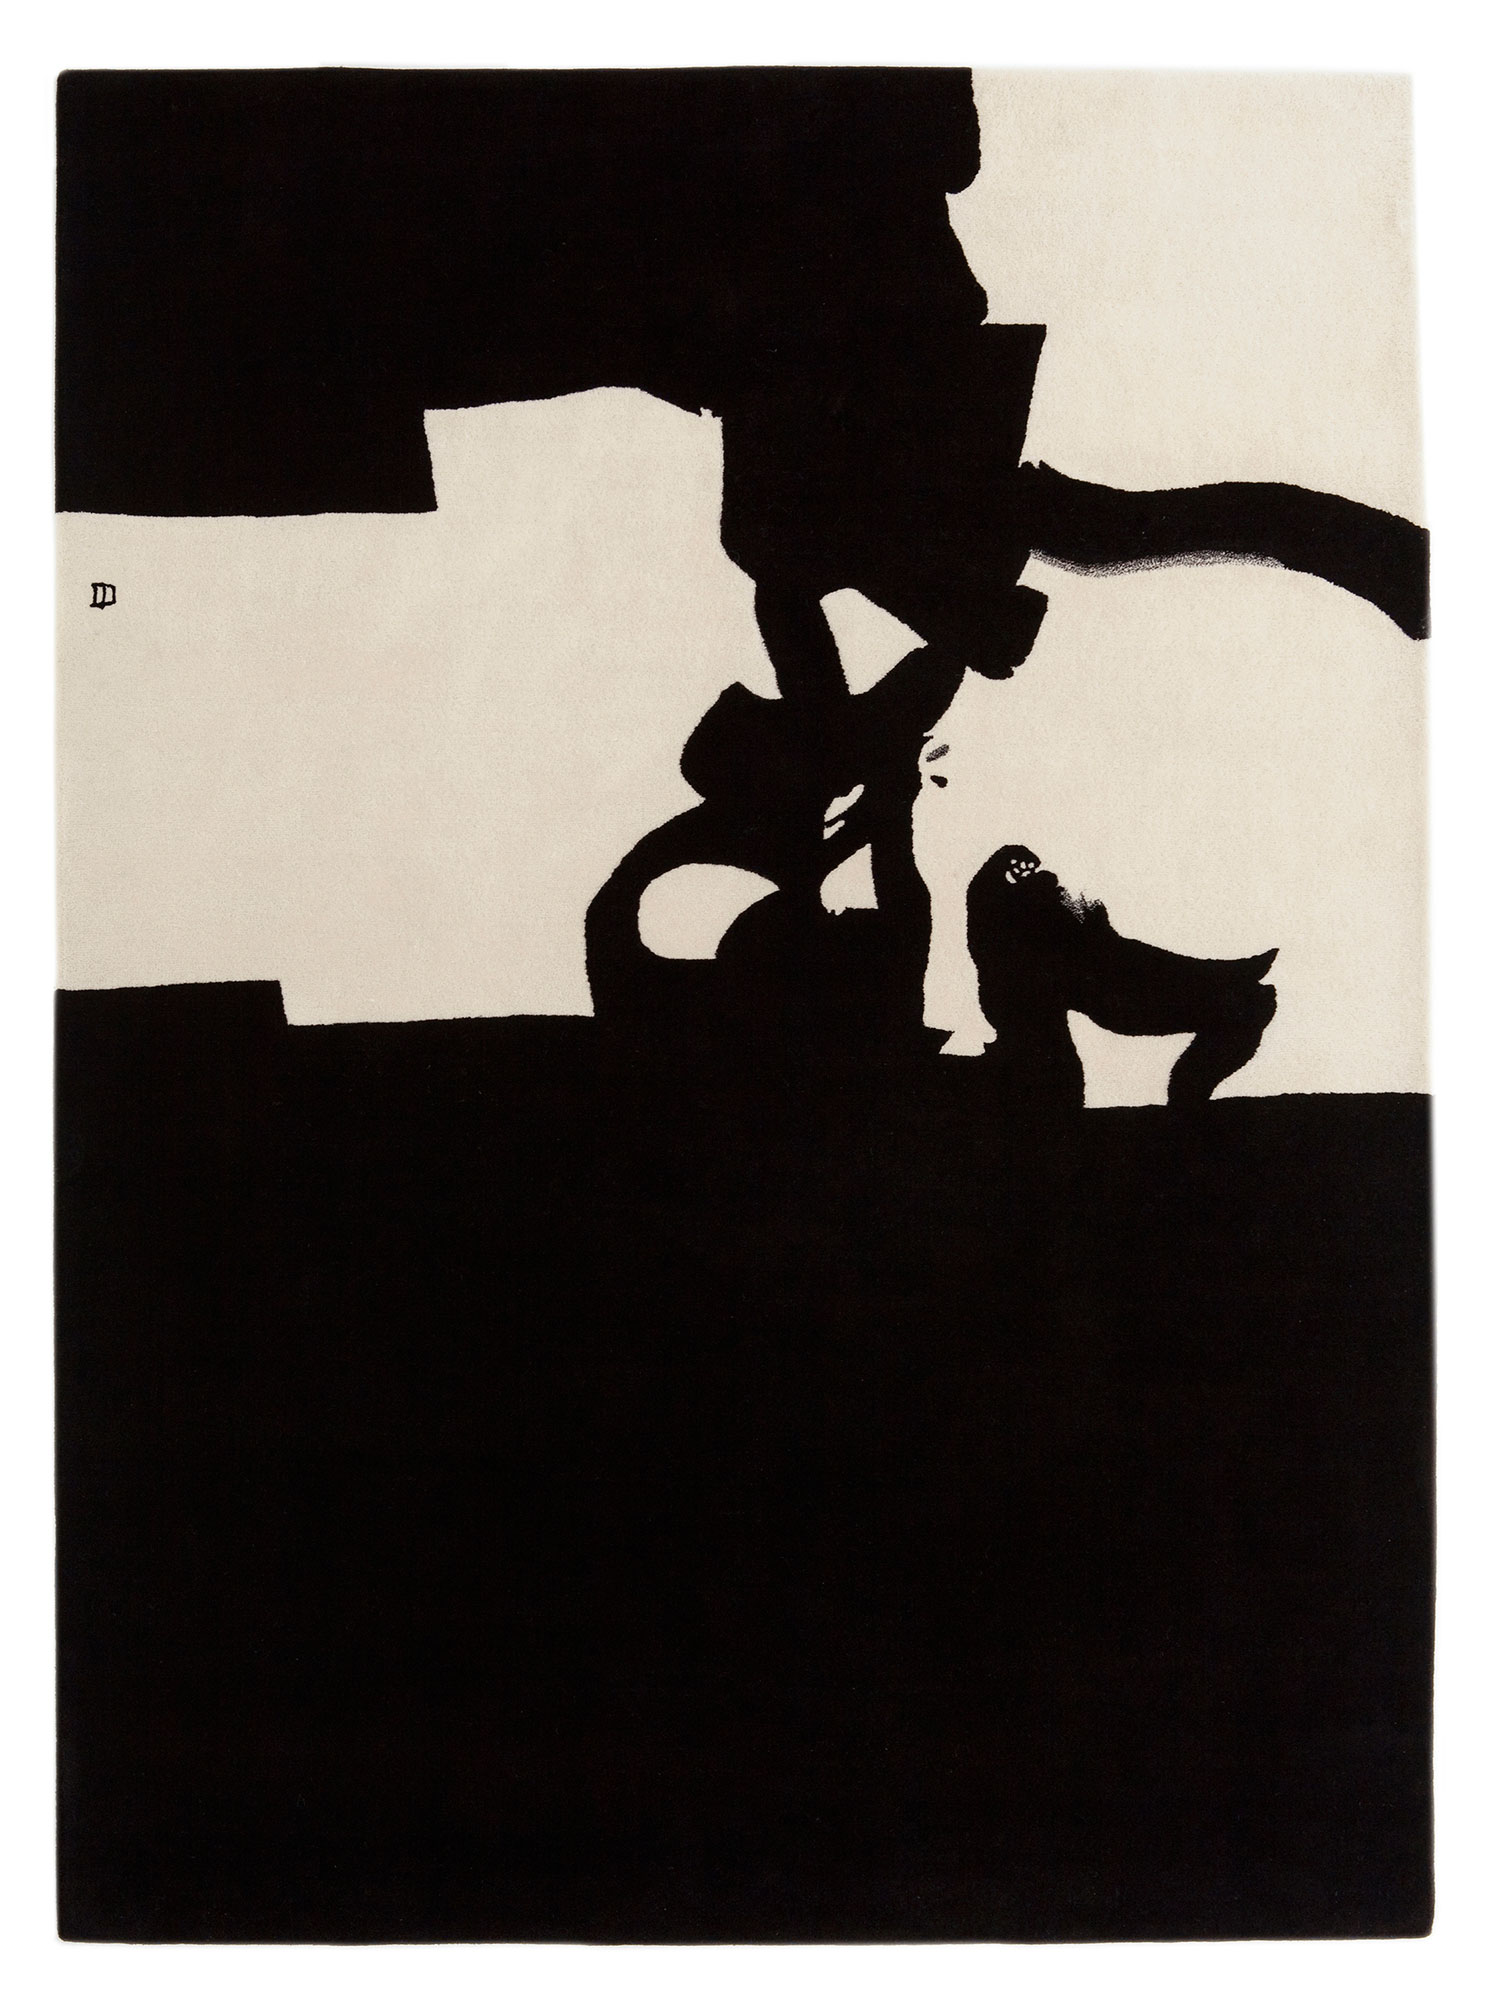 Chillida-collage-plain-web.jpg